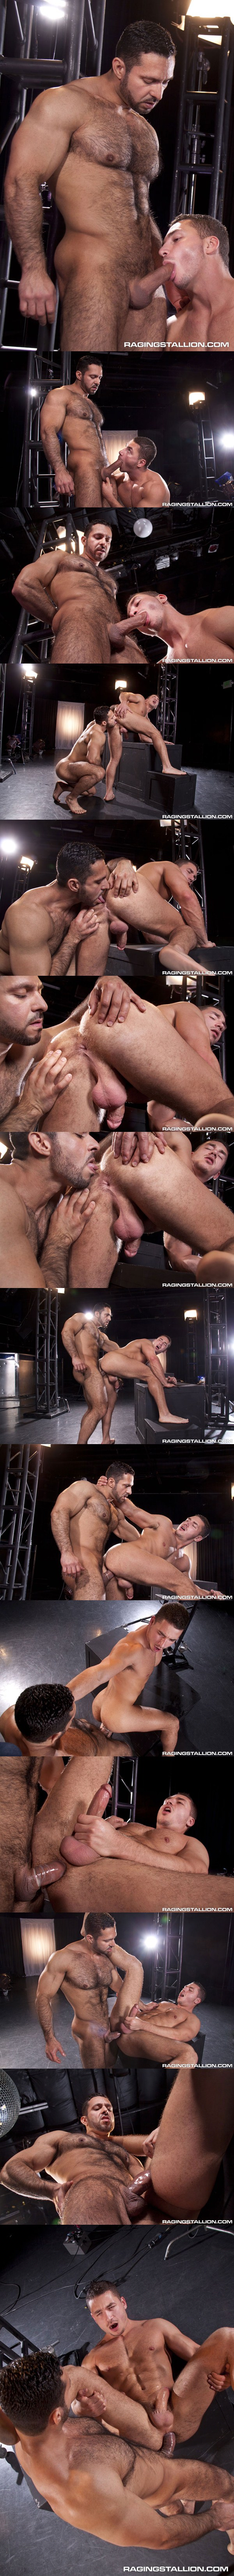 Muscular Hairy Adam Champ Plows Handsome Power Bottom Marc Dylan at Ragingstallion 01